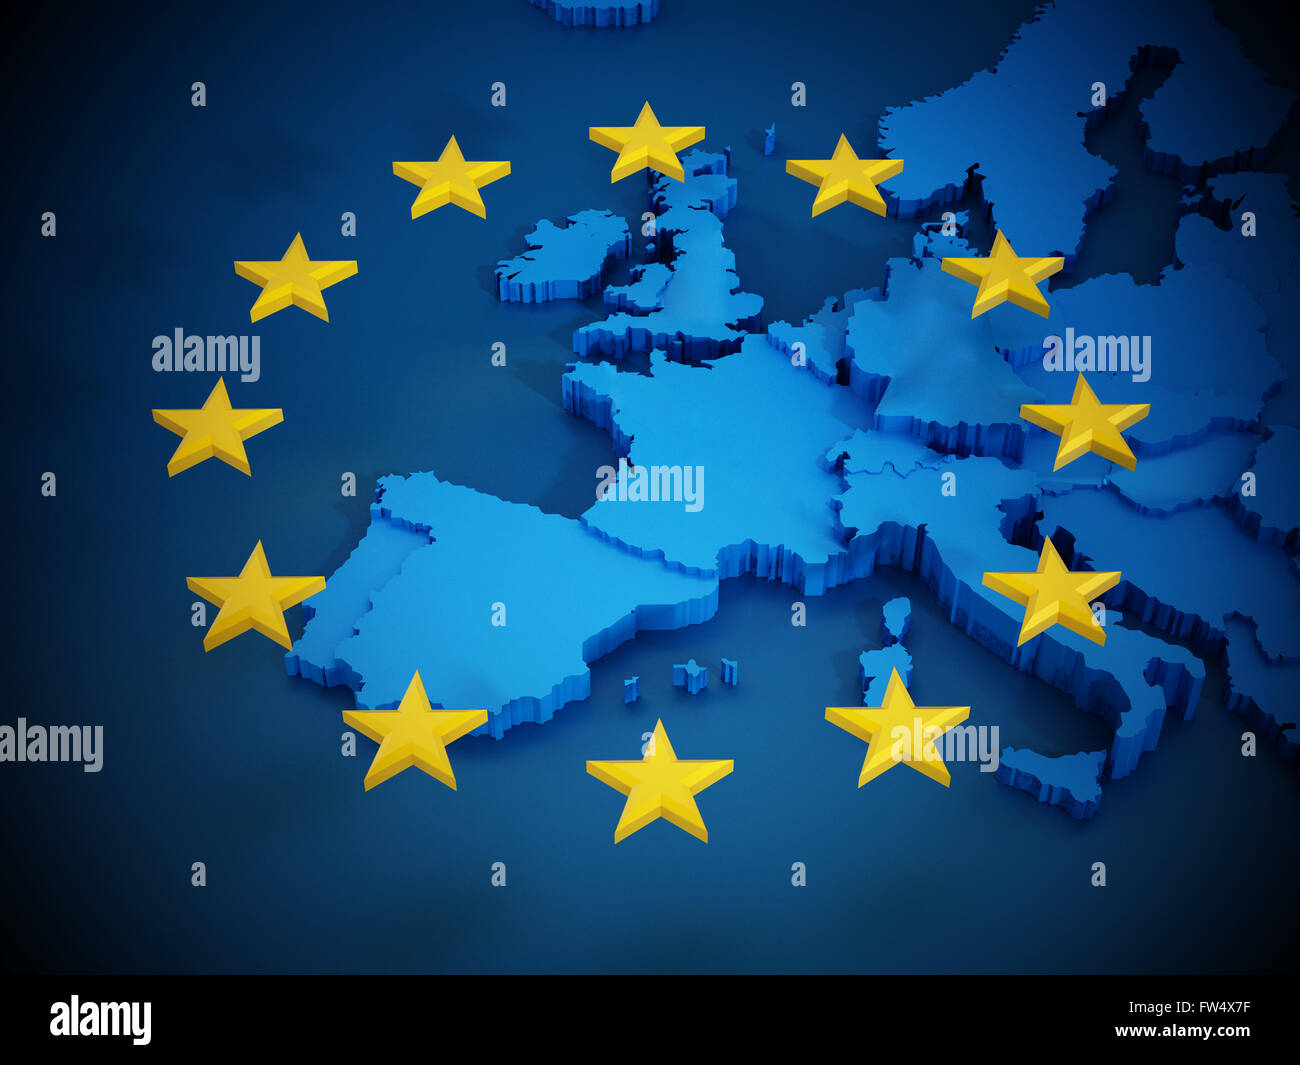 european union Timeline of the european union  european union institutions  the european union countries  information about all the european countries  languages in the eu (1.